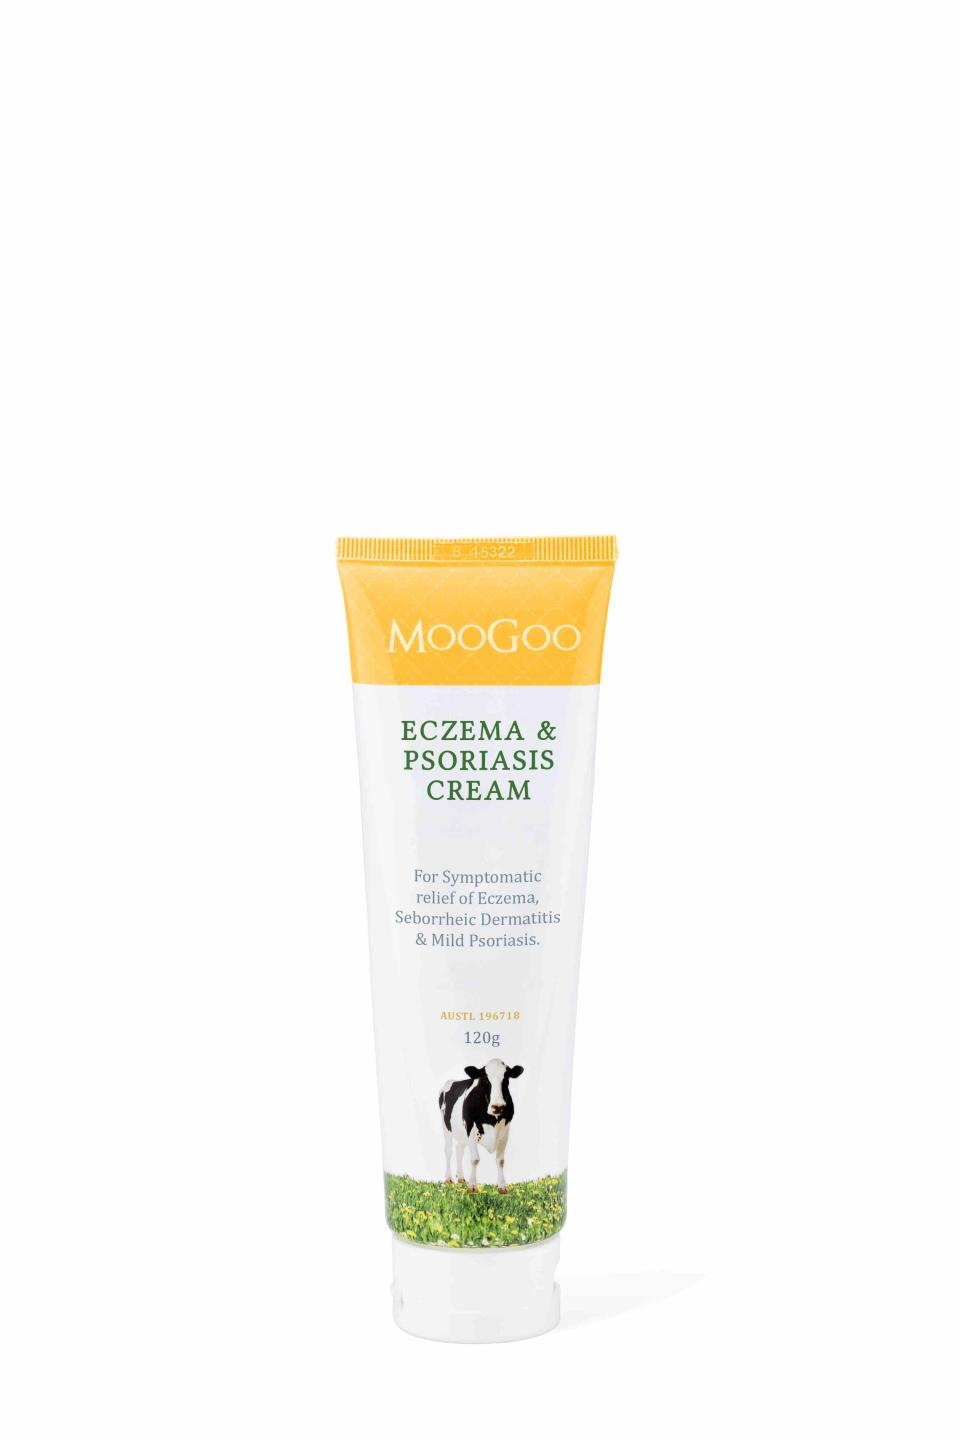 MooGoo Eczema & Psoriasis Cream. Photo: Supplied